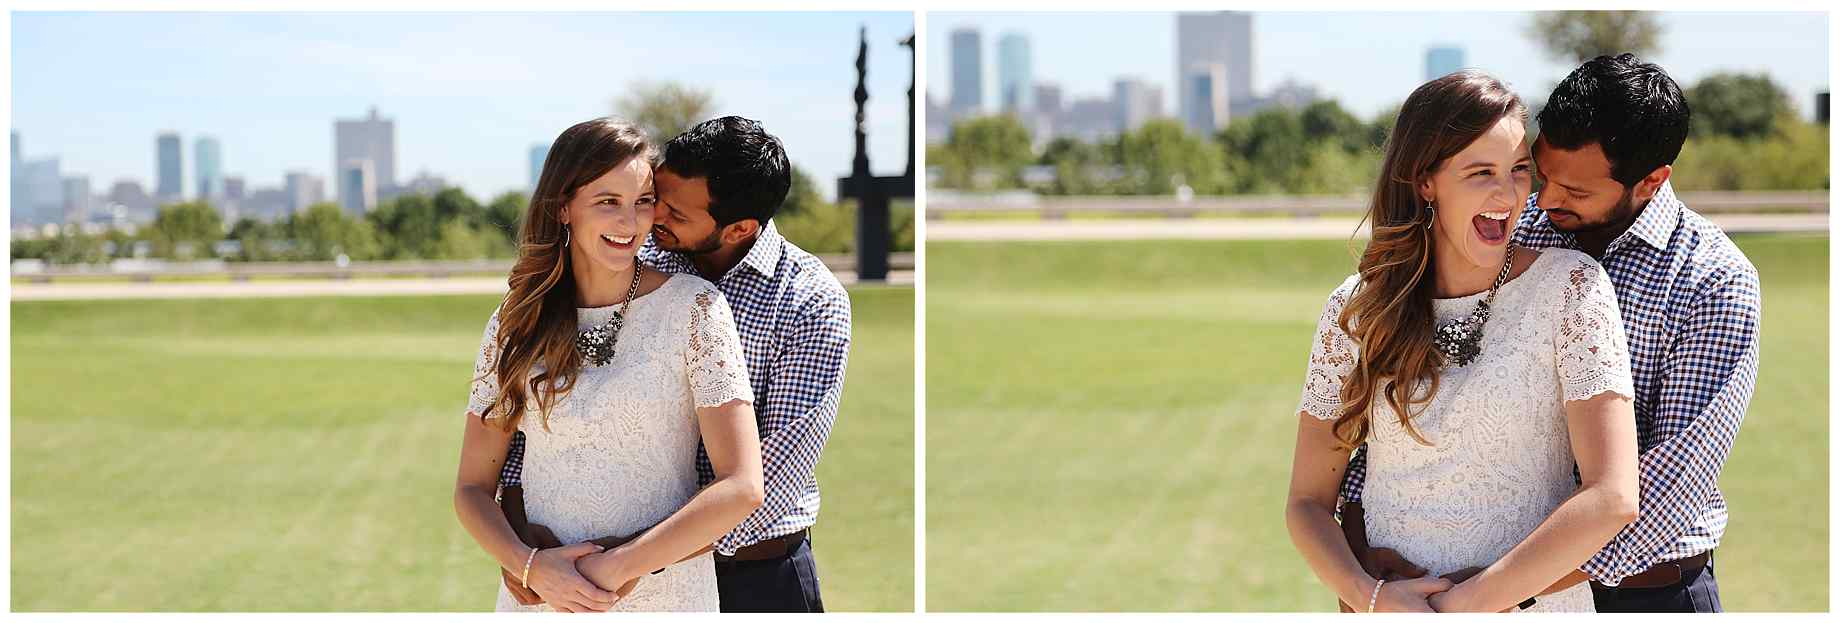 ft-worth-museum-engagement-photos-011